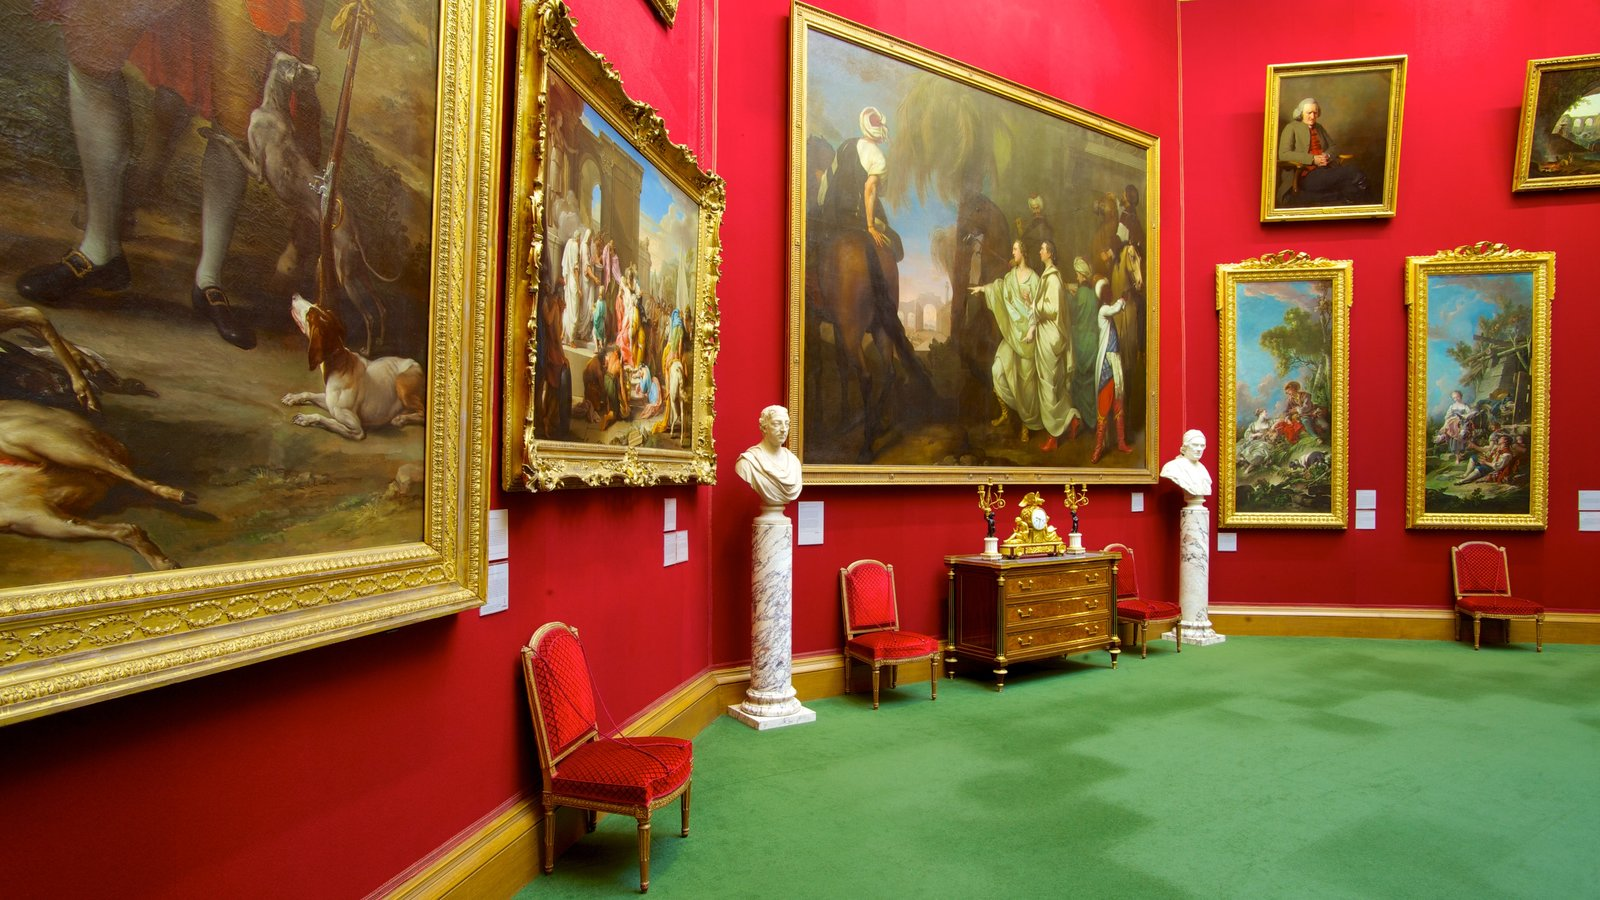 National Gallery of Scotland featuring interior views